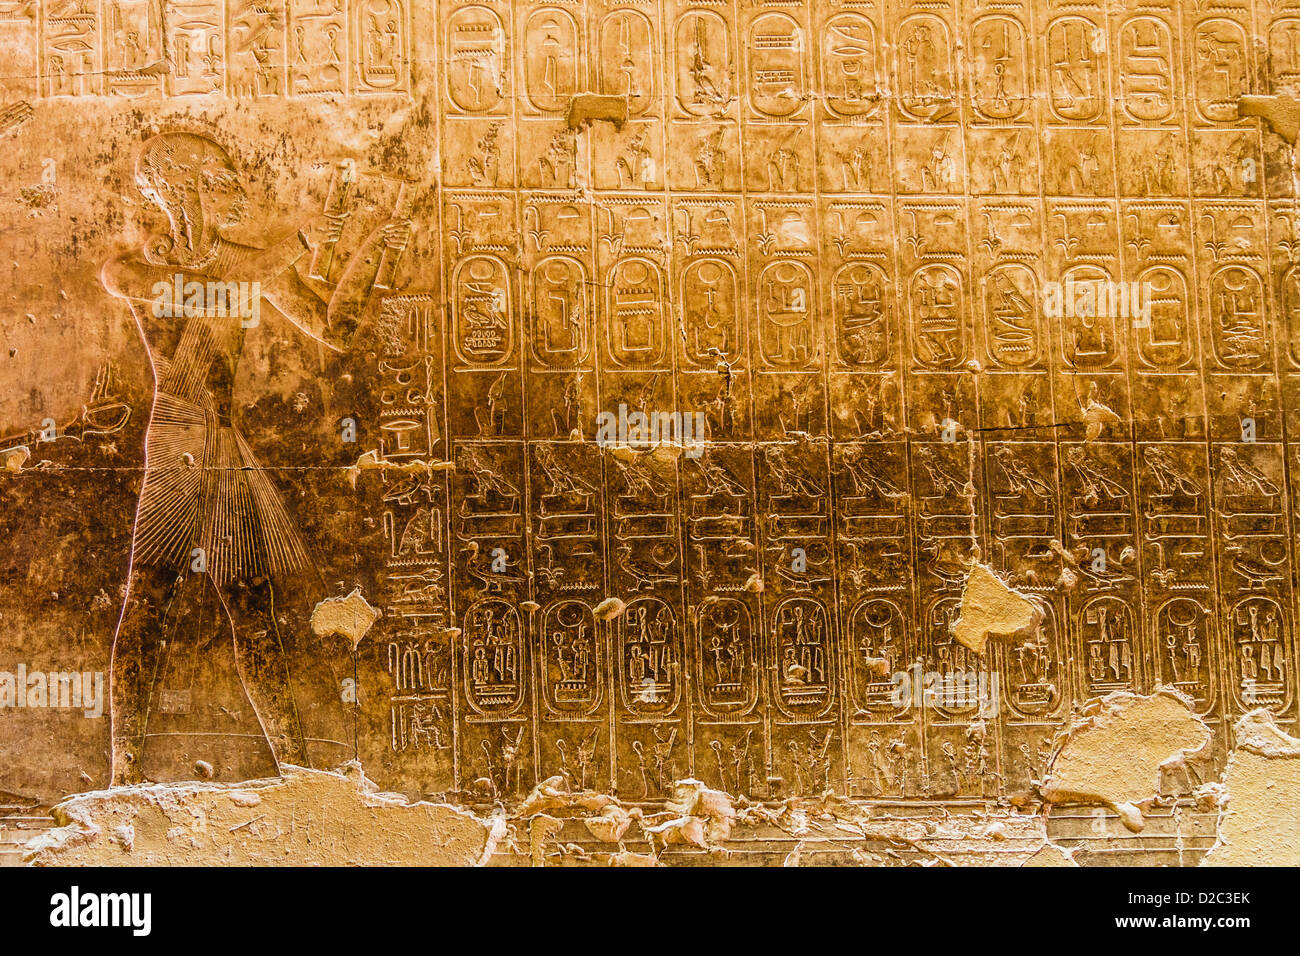 Abydos King list at the Memorial temple of Seti I, Abydos, Egypt - Stock Image